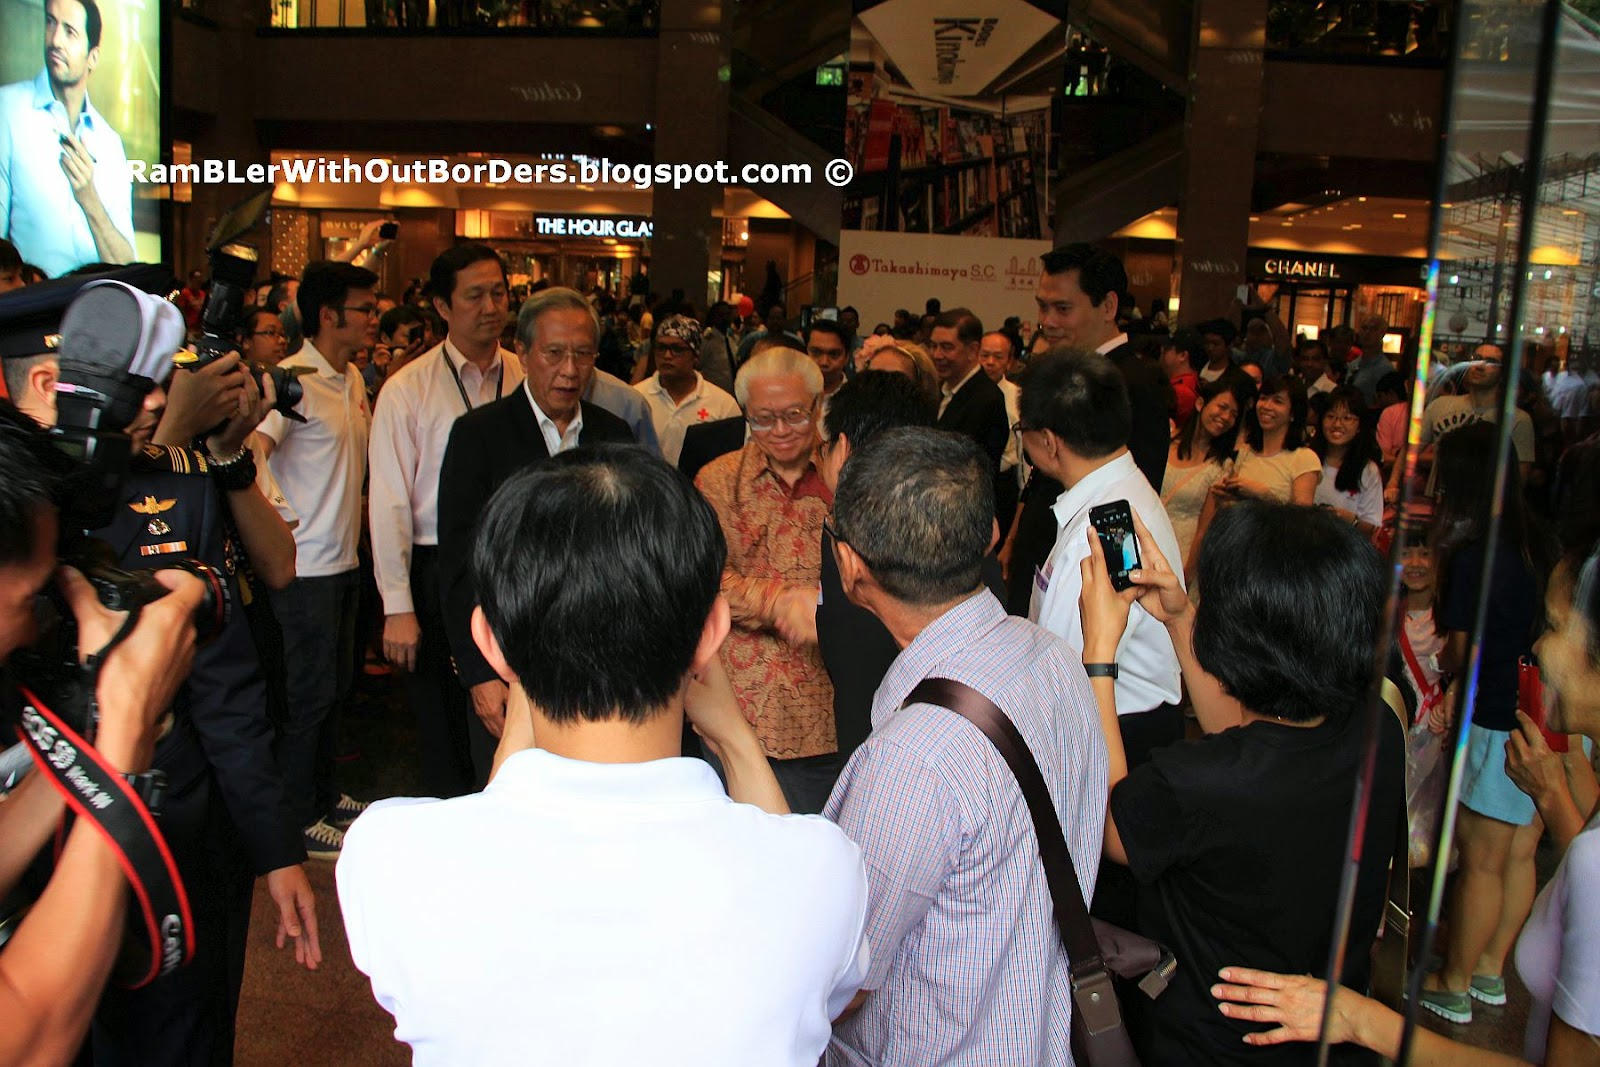 President of Singapore, Star Wars characters Reception, Singapore International Red Cross Bazaar 2015